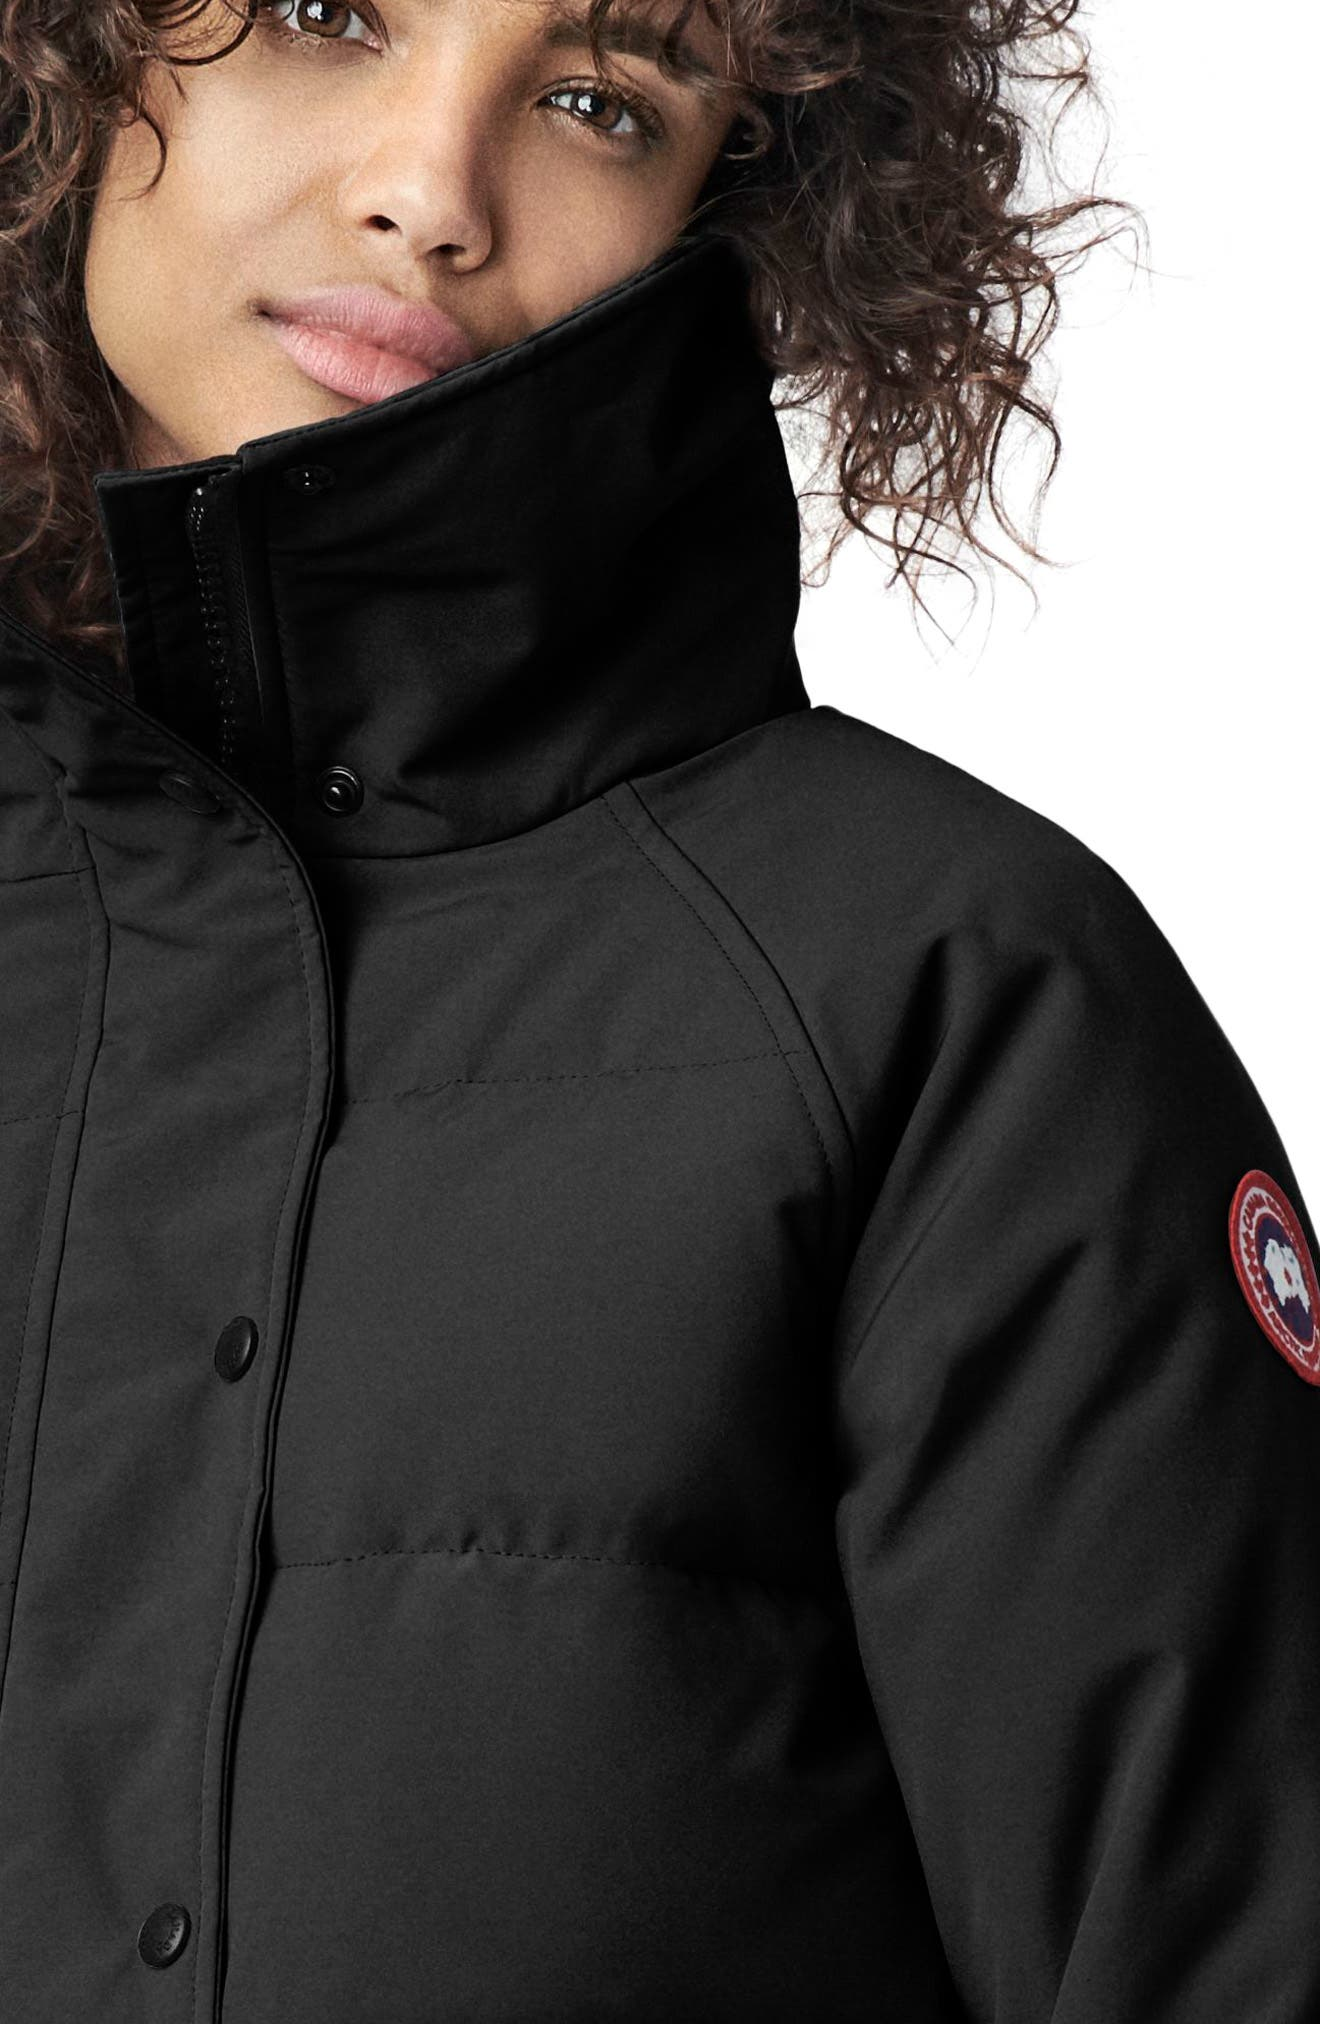 CANADA GOOSE, Deep Cove Arctic Tech Water Resistant 625 Fill Power Down Bomber Jacket, Alternate thumbnail 4, color, BLACK